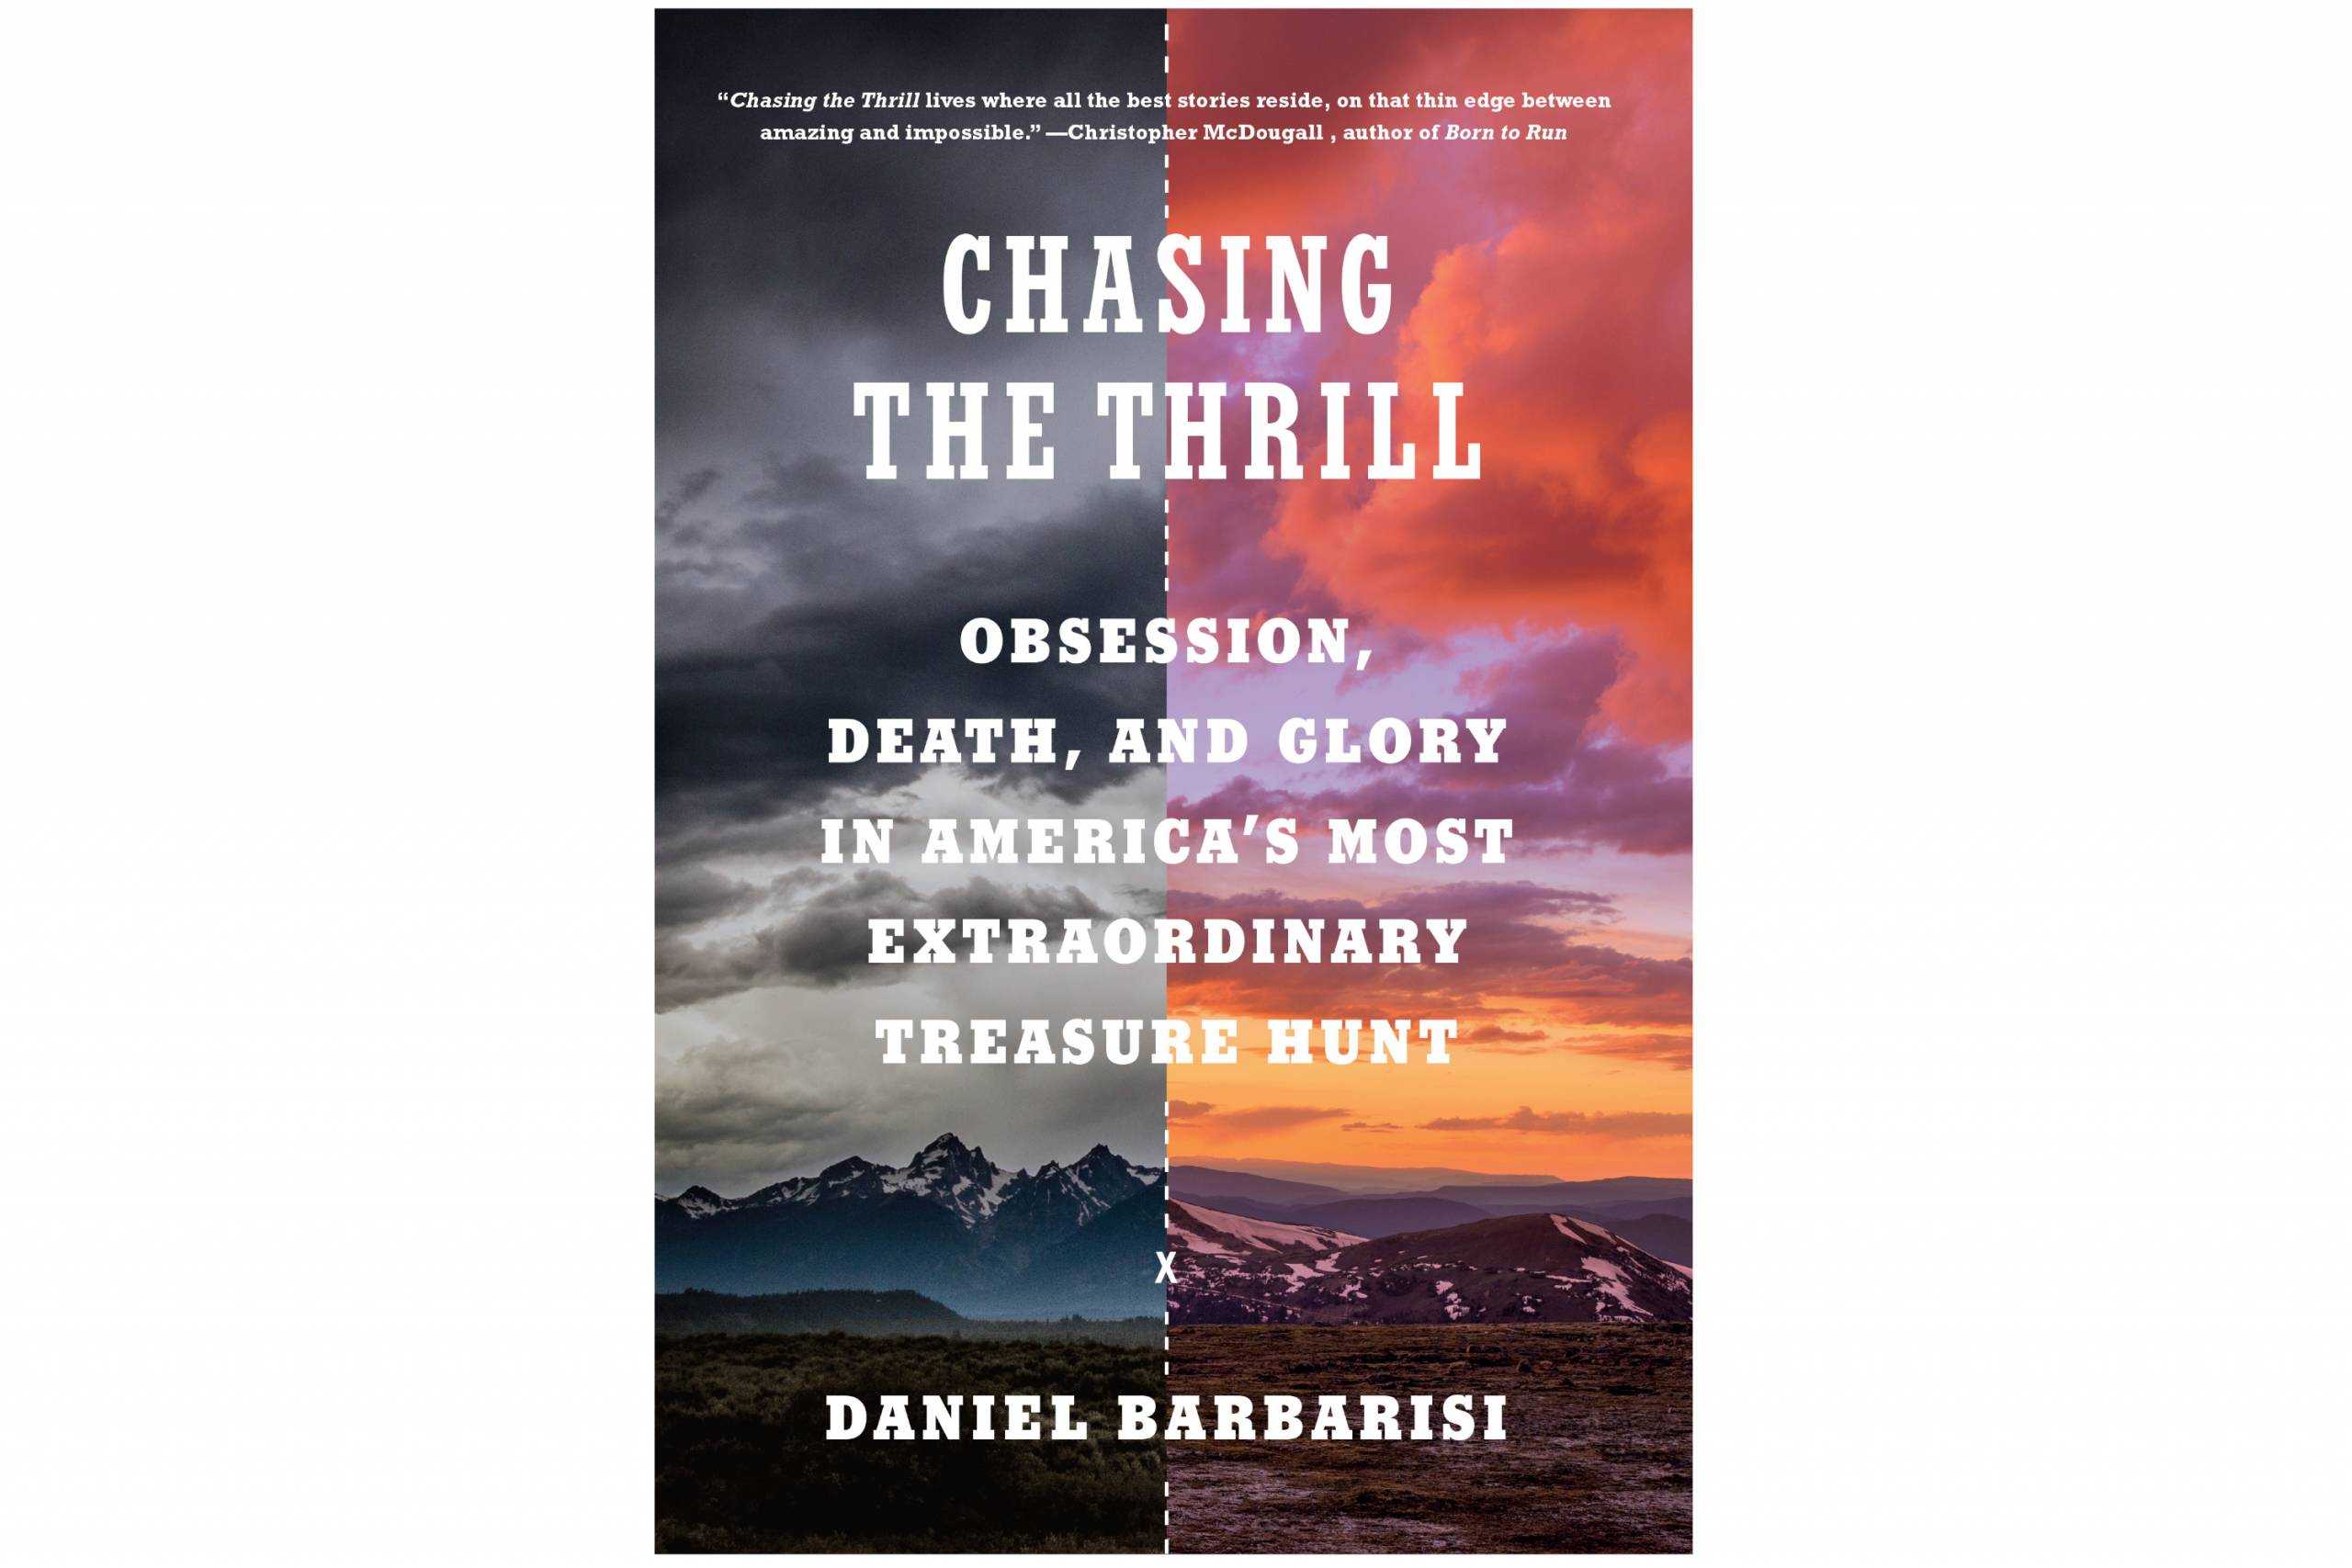 Chasing-the-Thrill-by-Daniel-Barbarisi-book-cover